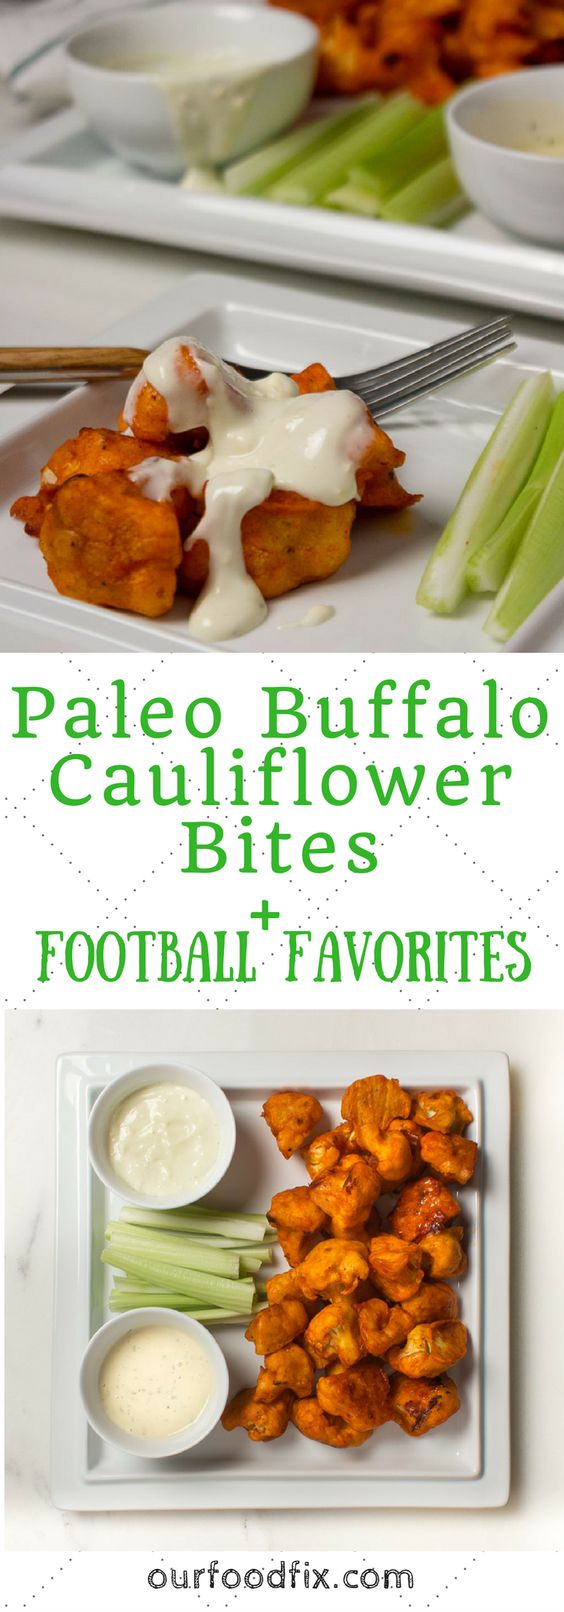 Football food | Football recipes | Football fare | Party food | Appetizer recipes | Snack recipes | Paleo recipes | Gluten free recipes | Grain free recipes | Dairy free recipes | Low carb recipes | Vegetarian recipes | Buffalo sauce | Super Bowl